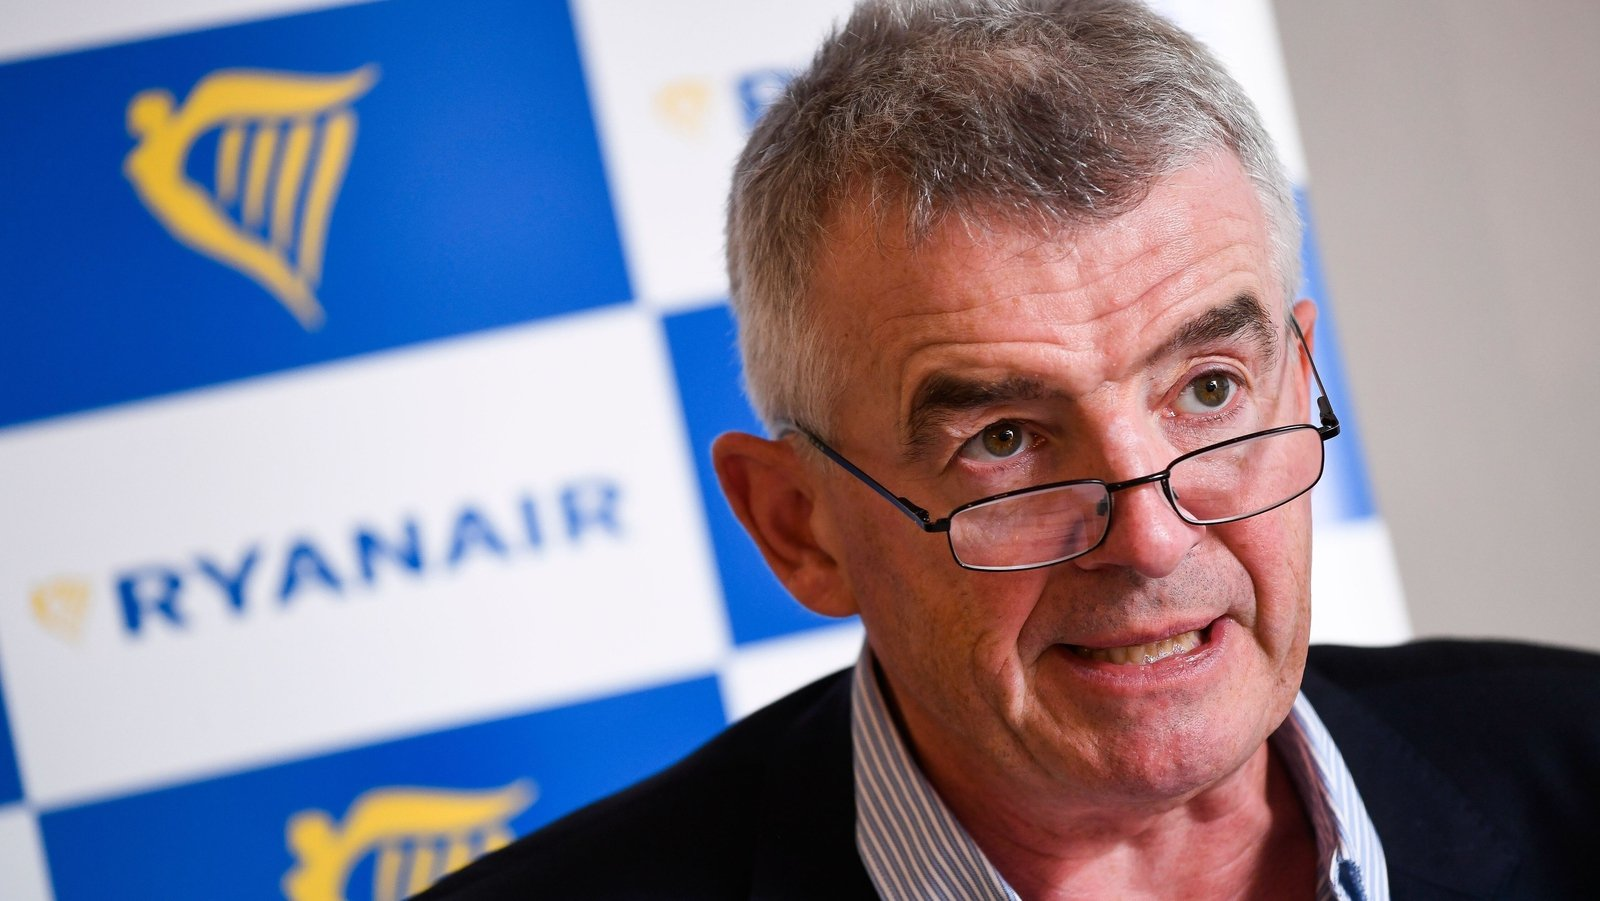 O'Leary criticised over comments on Muslims